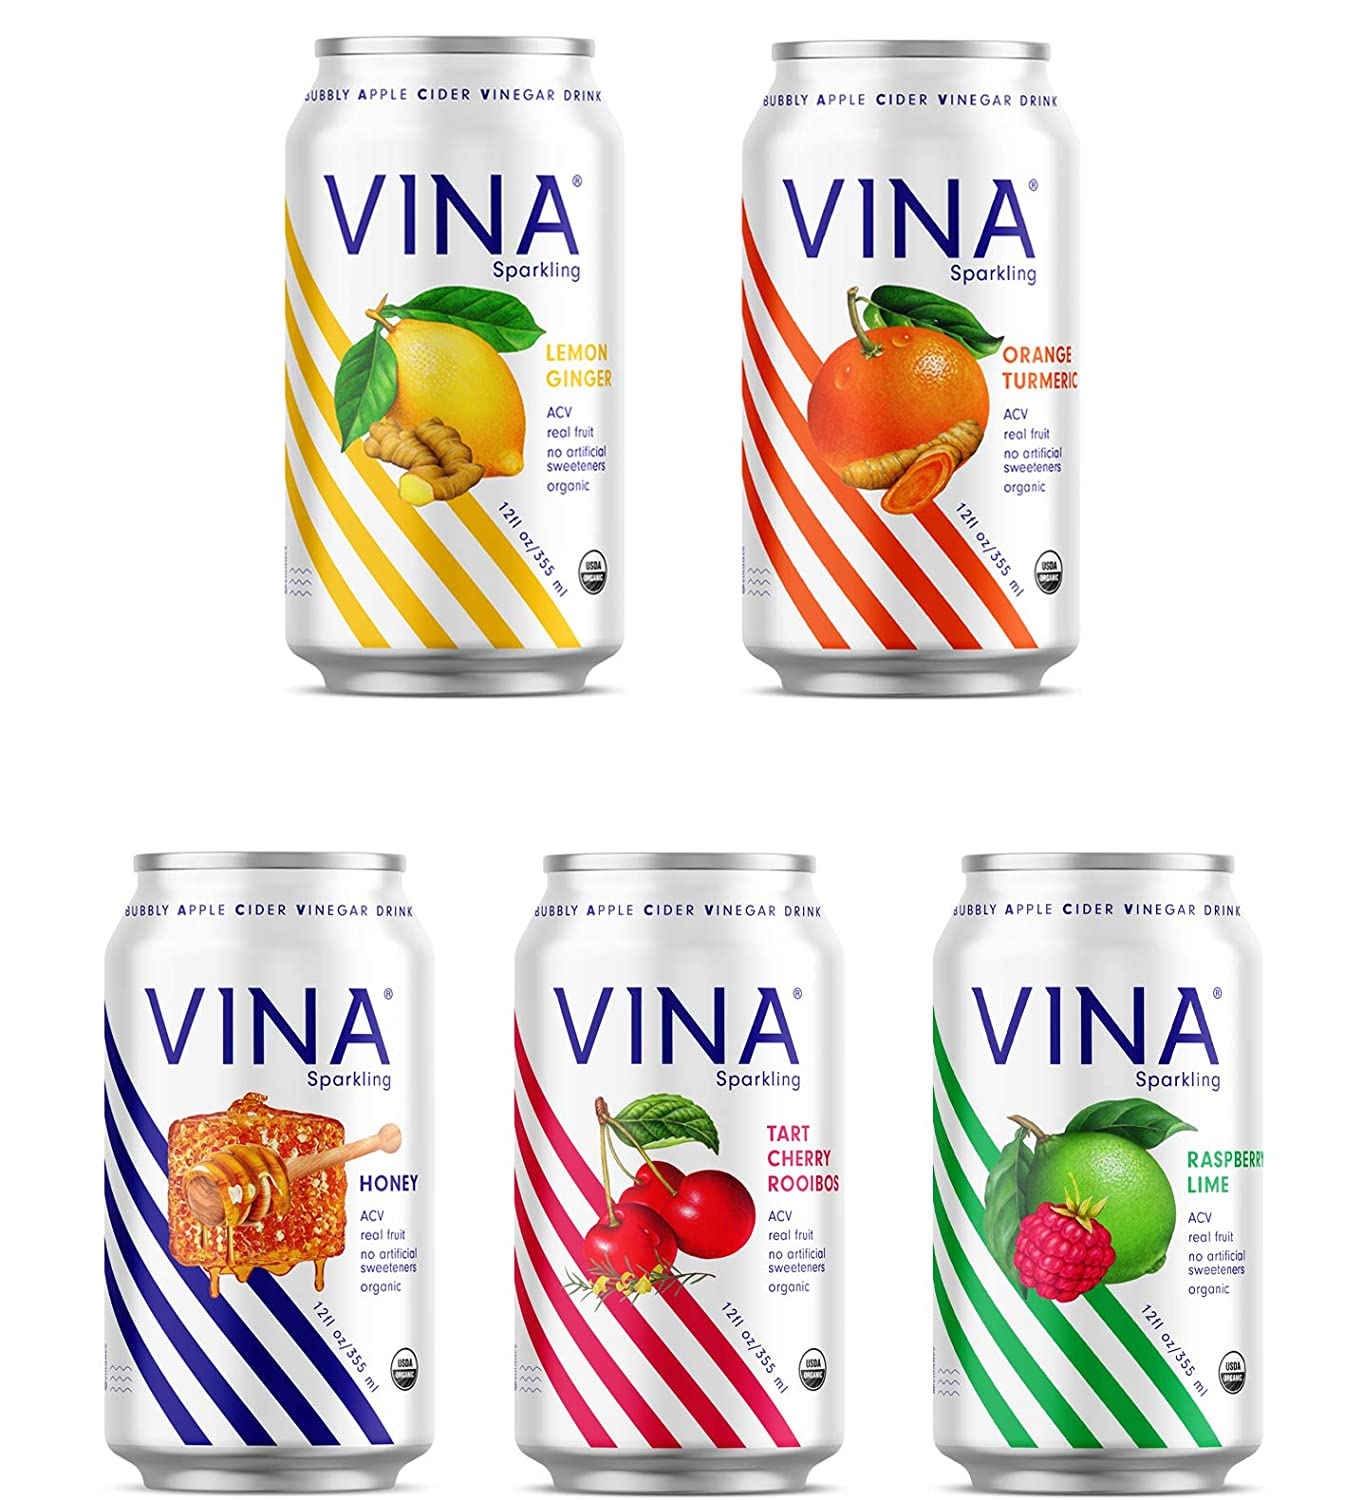 VINA Sparkling Apple Cider Vinegar Drink | Variety Pack Made With Certified Organic Apple Cider Vinegar, Real Fruit, Sparkling Water, No Artificial Sweeteners | 12 Fluid Ounce Cans (Pack of 12)